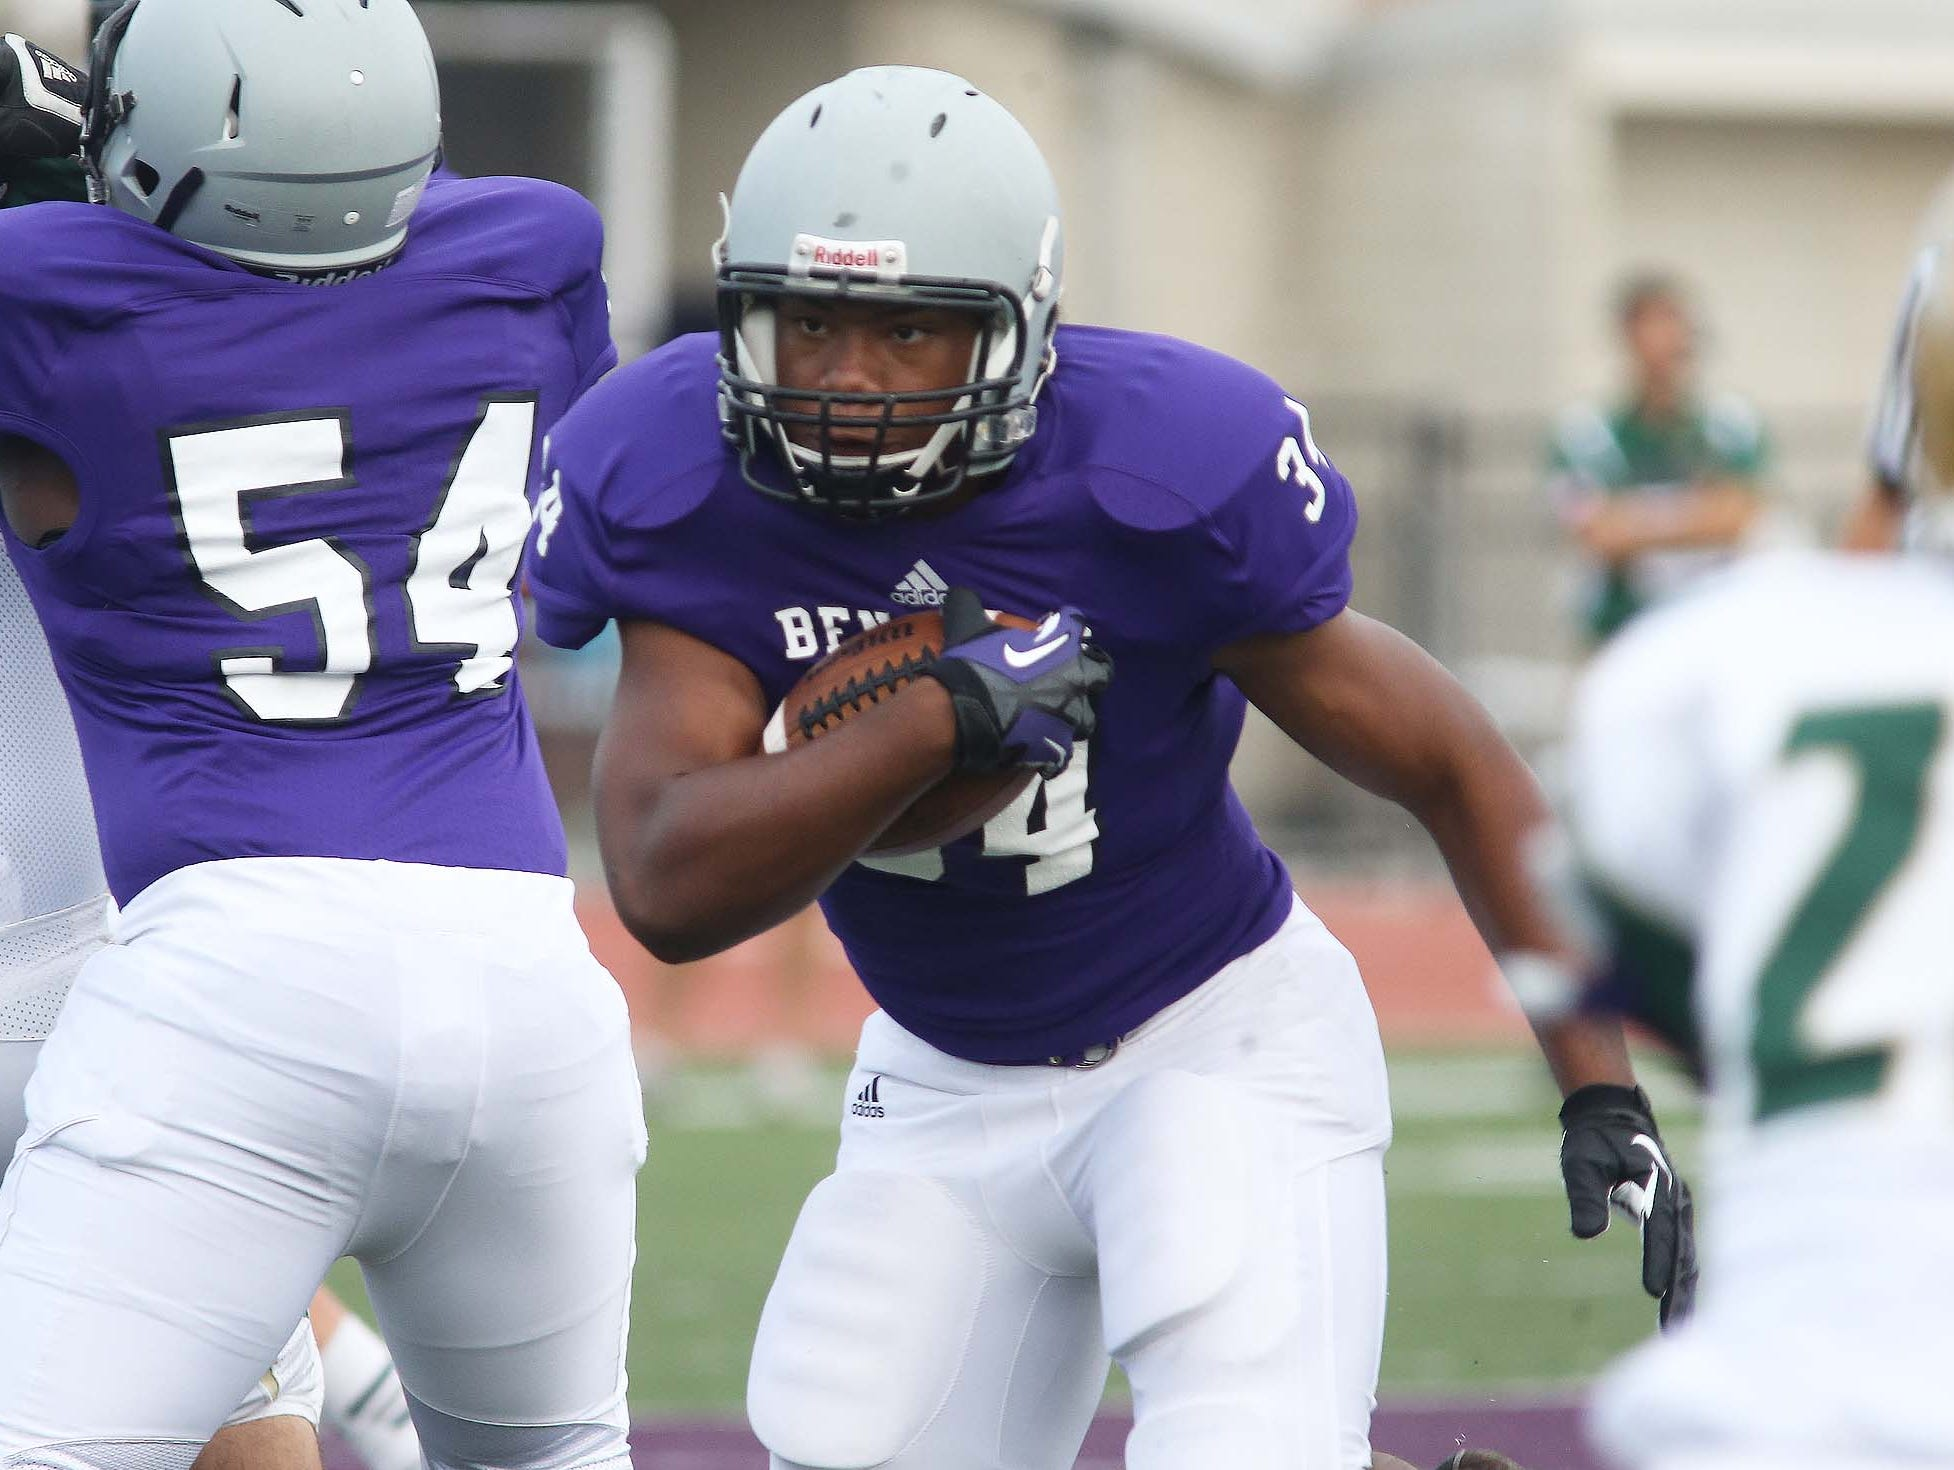 LeShawn Johnson of Ben Davis runs through a hole in the line. Ben Davis hosted Westfield in a football scrimmage Friday August 15, 2014.